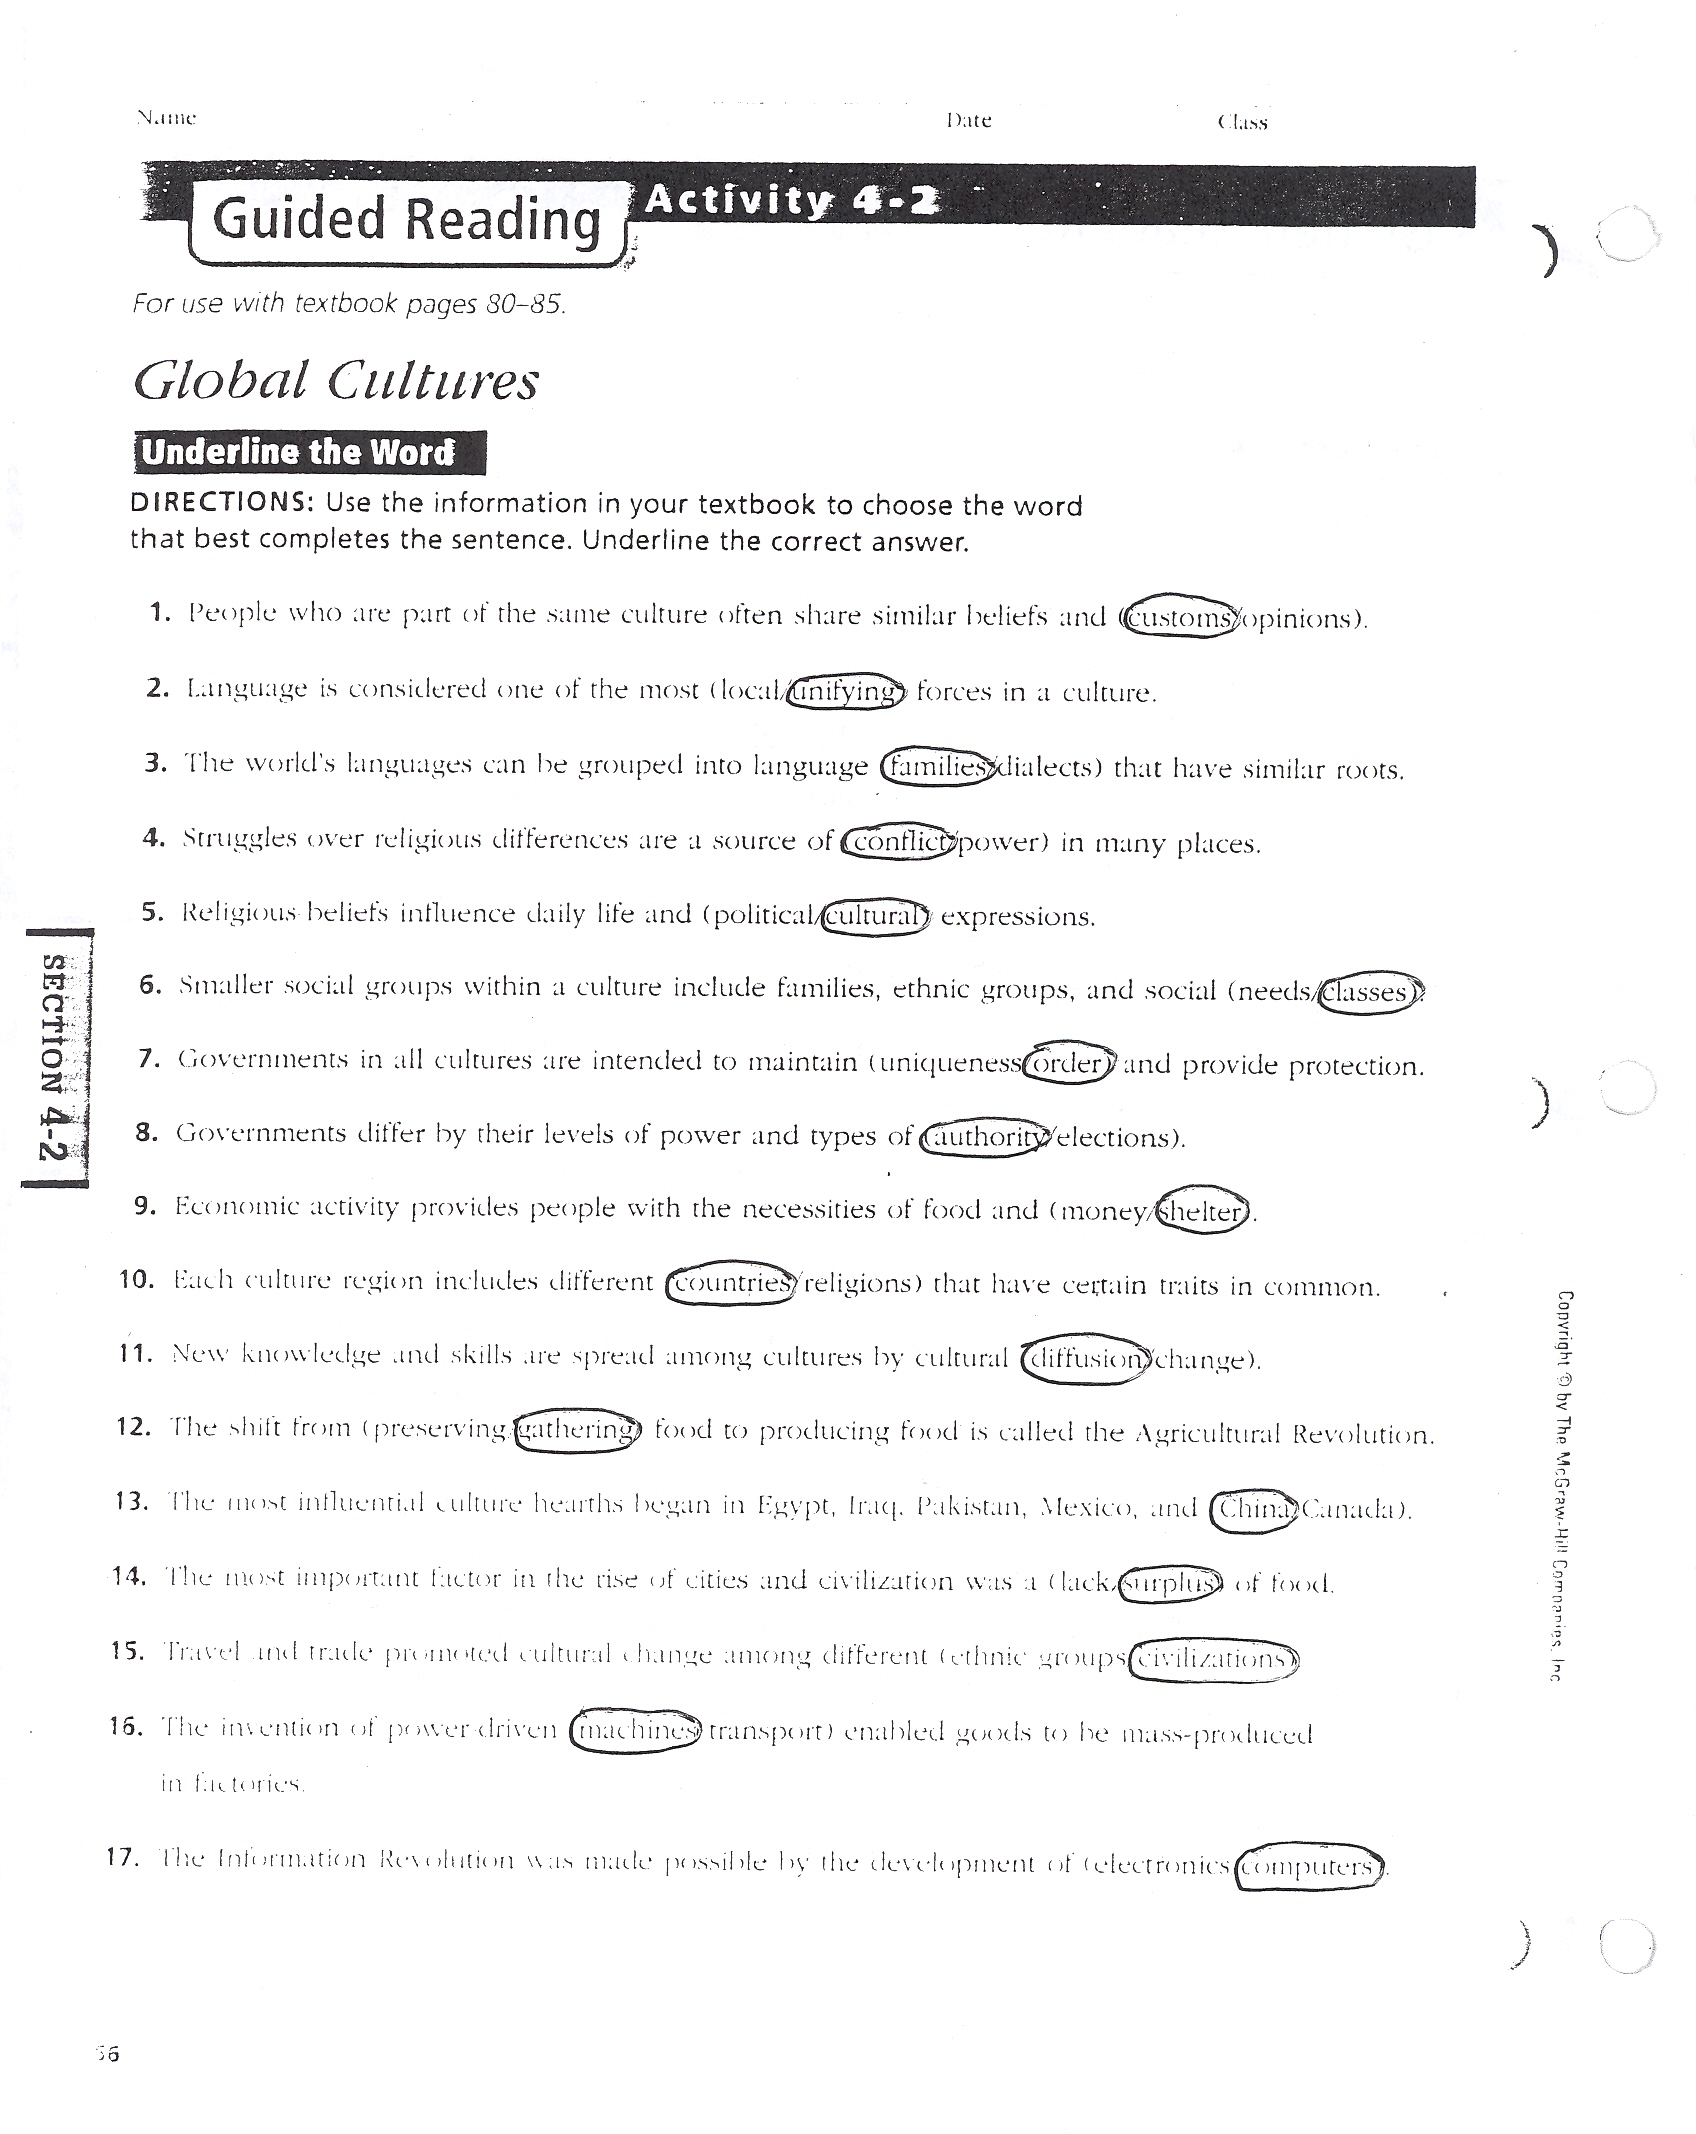 world history world geography rh acedwardslobos86 com Balanced Literacy Guided Reading Groups